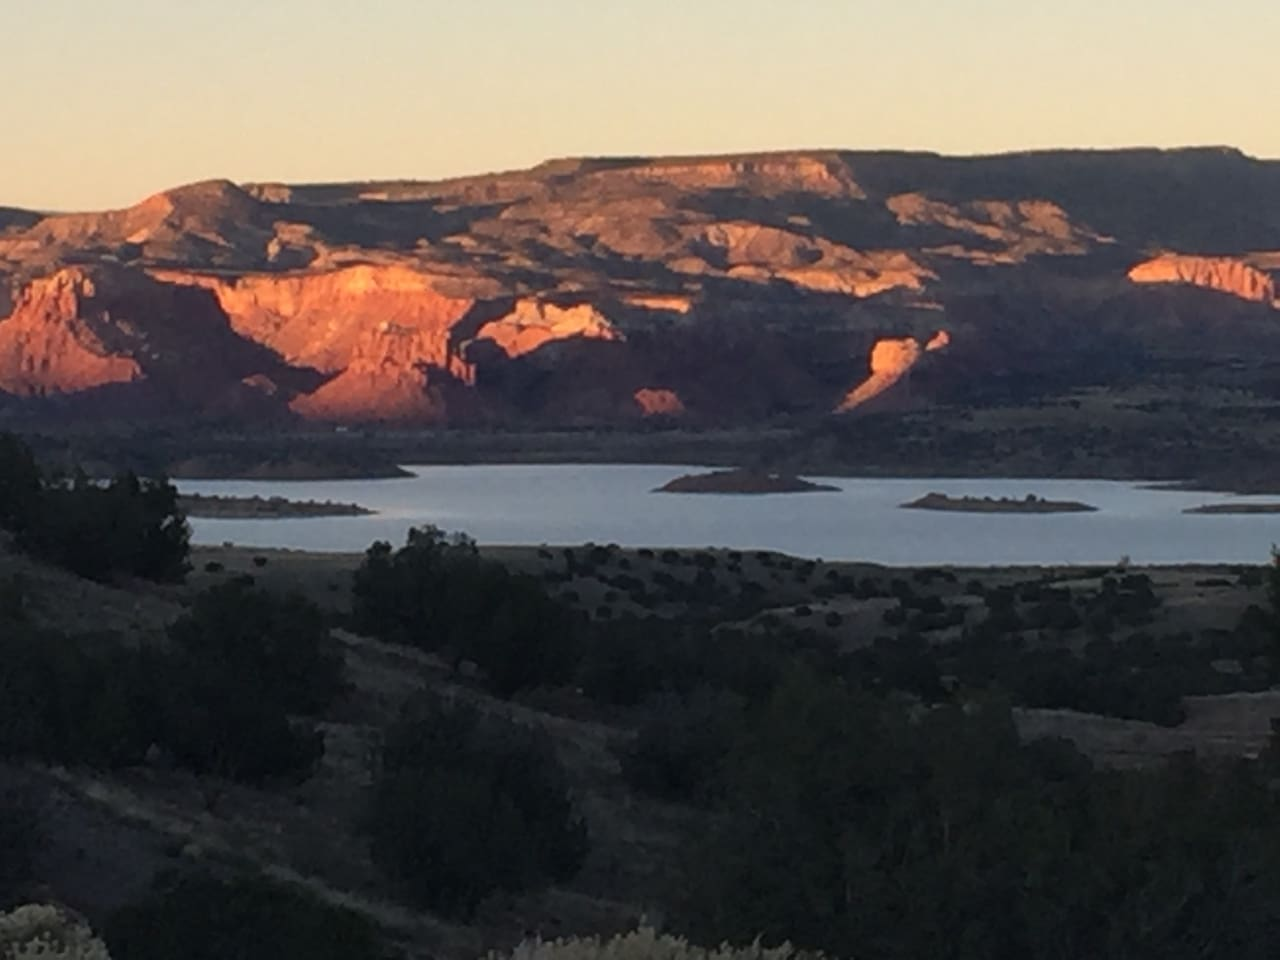 North view: Abiquiu Lake & Ghost Ranch